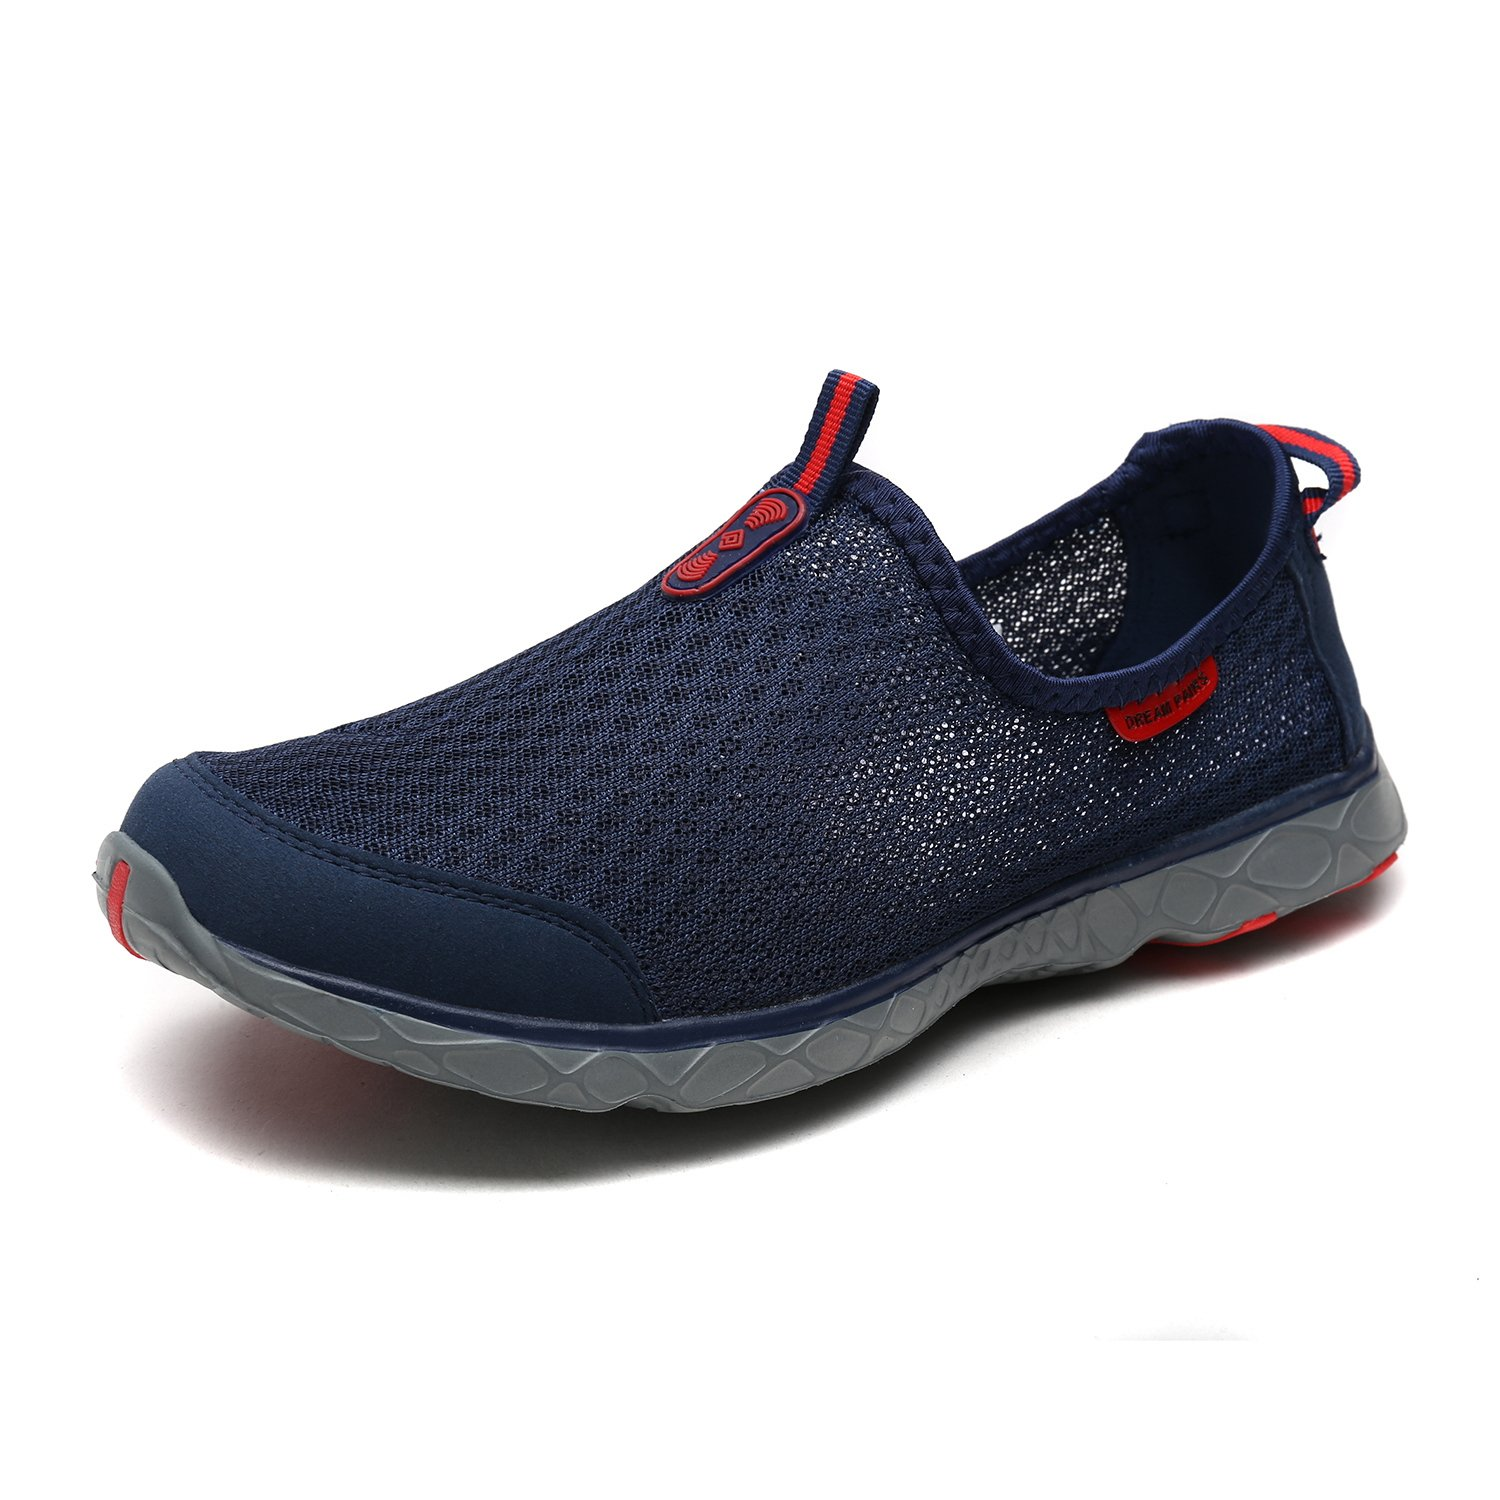 DREAM PAIRS Men's 1610043-M Navy Red Quick-Dry Slip-on Water Shoes for Beach Pool Walking - 8 M US